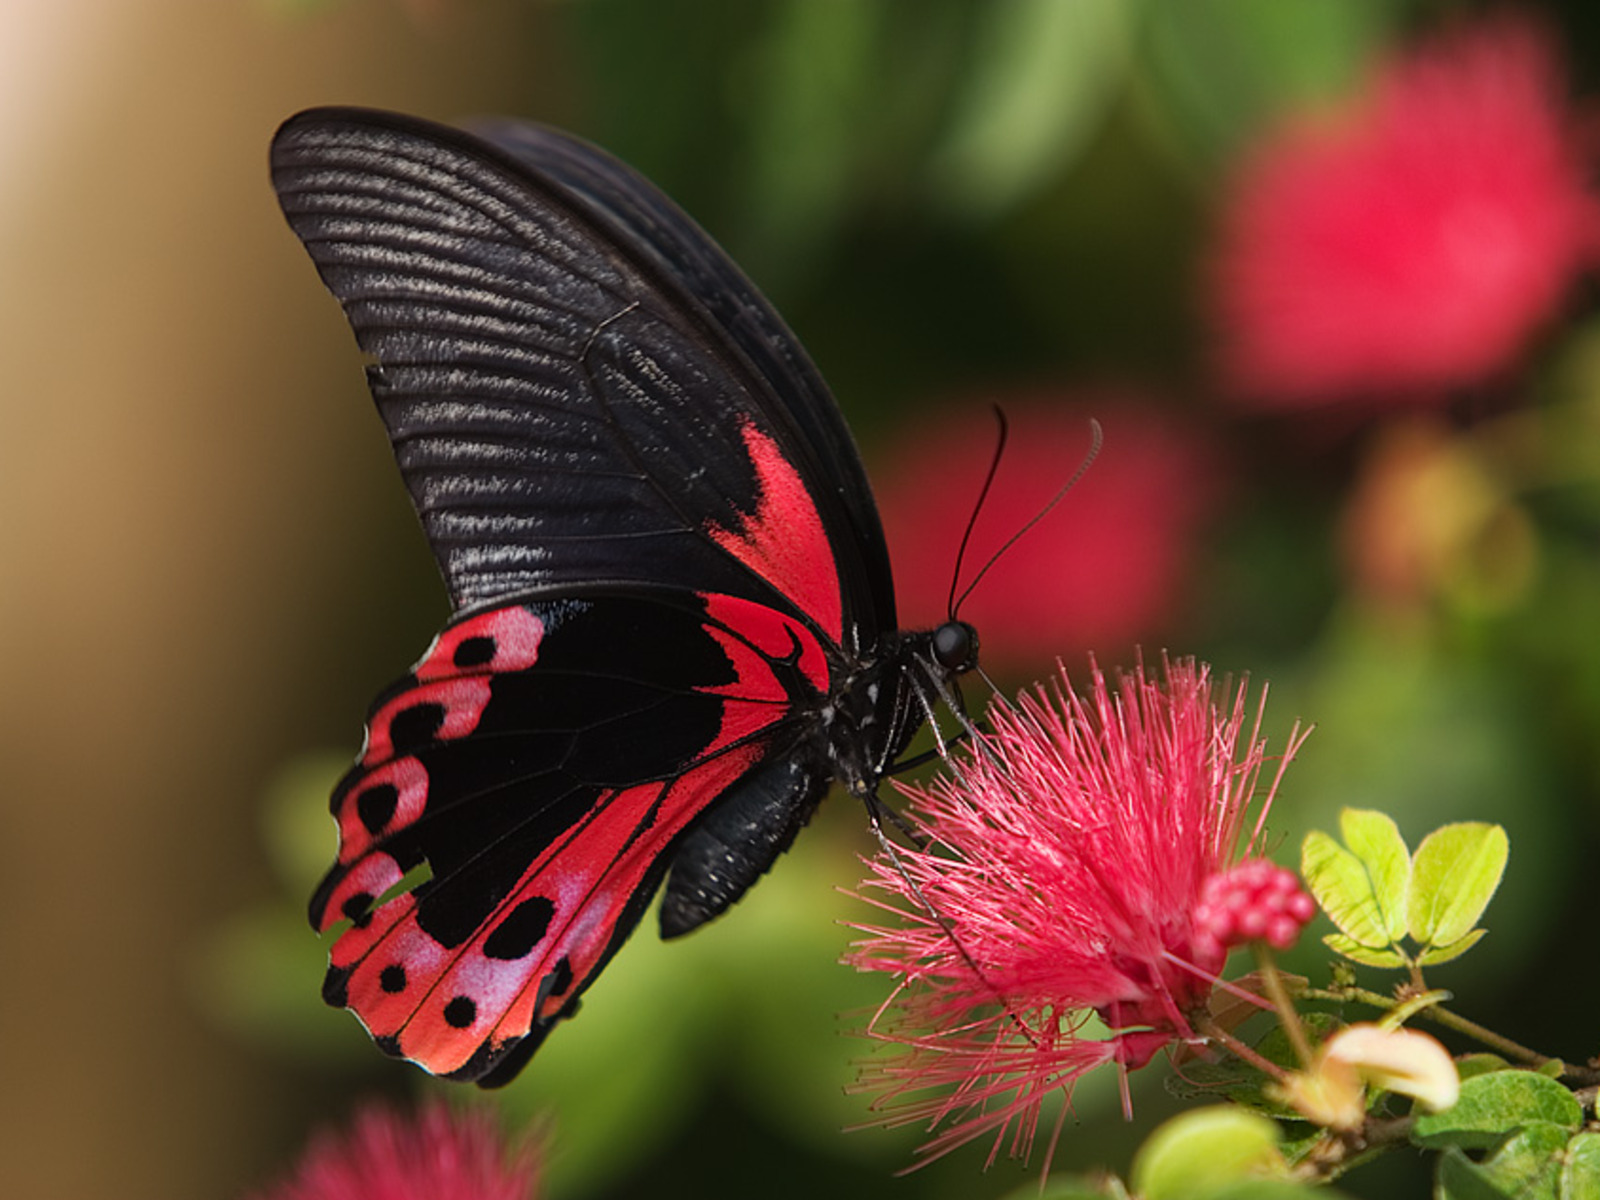 Butterfly wallpapers top best hd wallpapers for desktop for Butterfly wallpaper for walls